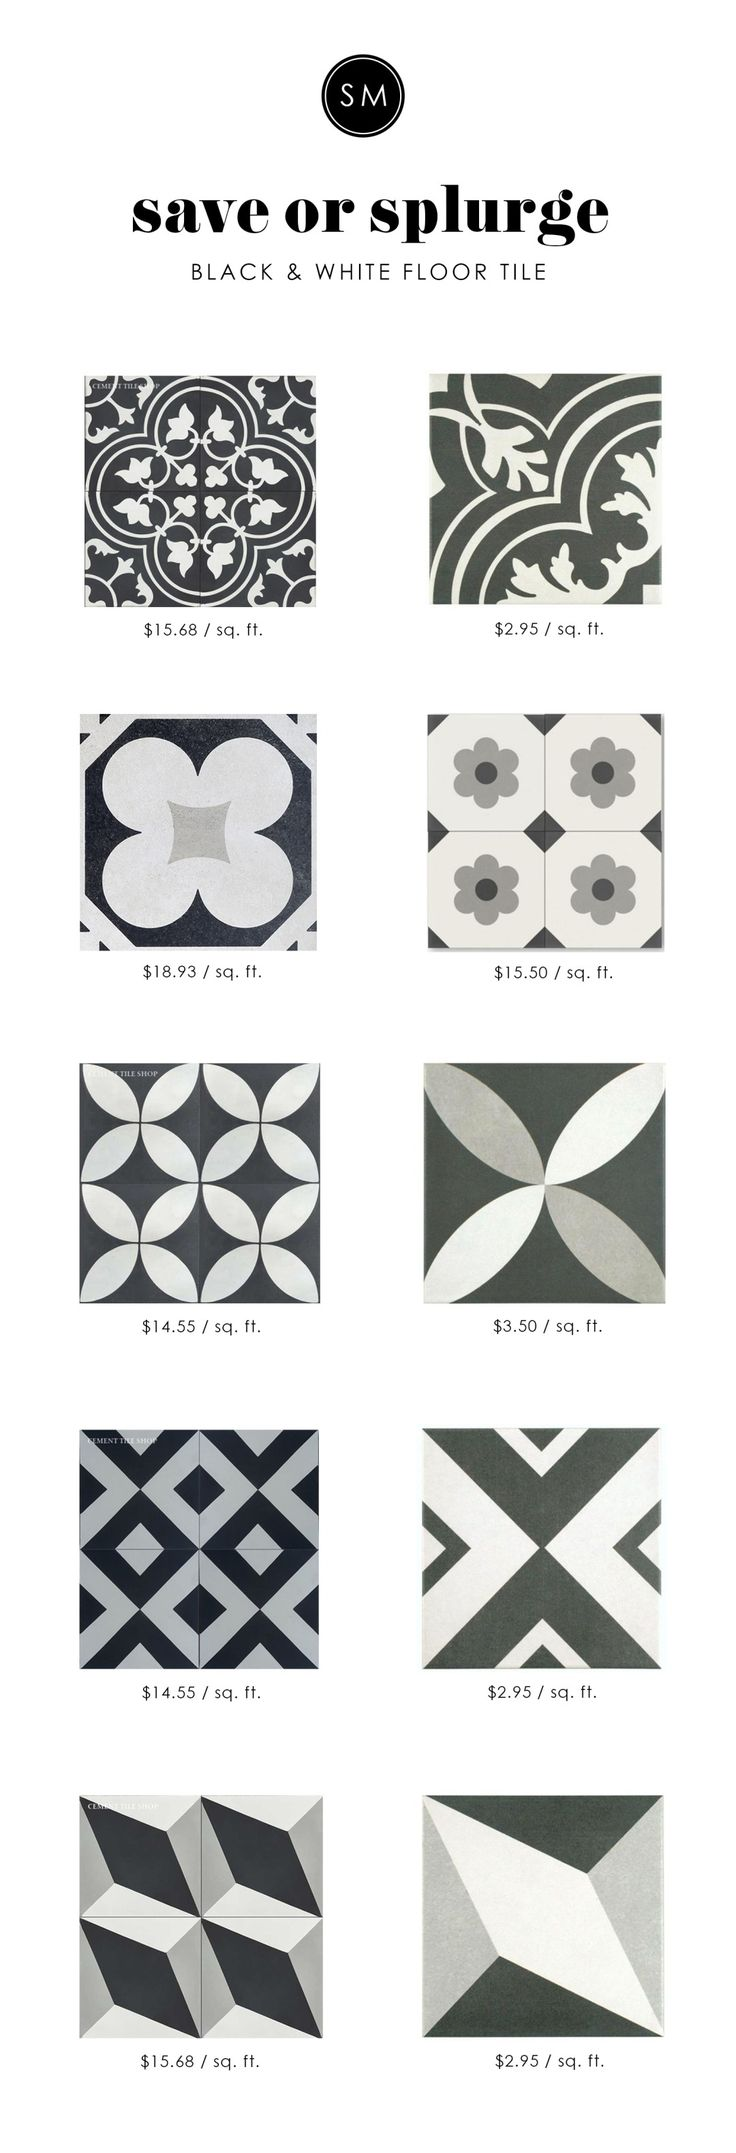 Bathroom designs black and white tiles - Save Or Splurge Black White Floor Tile